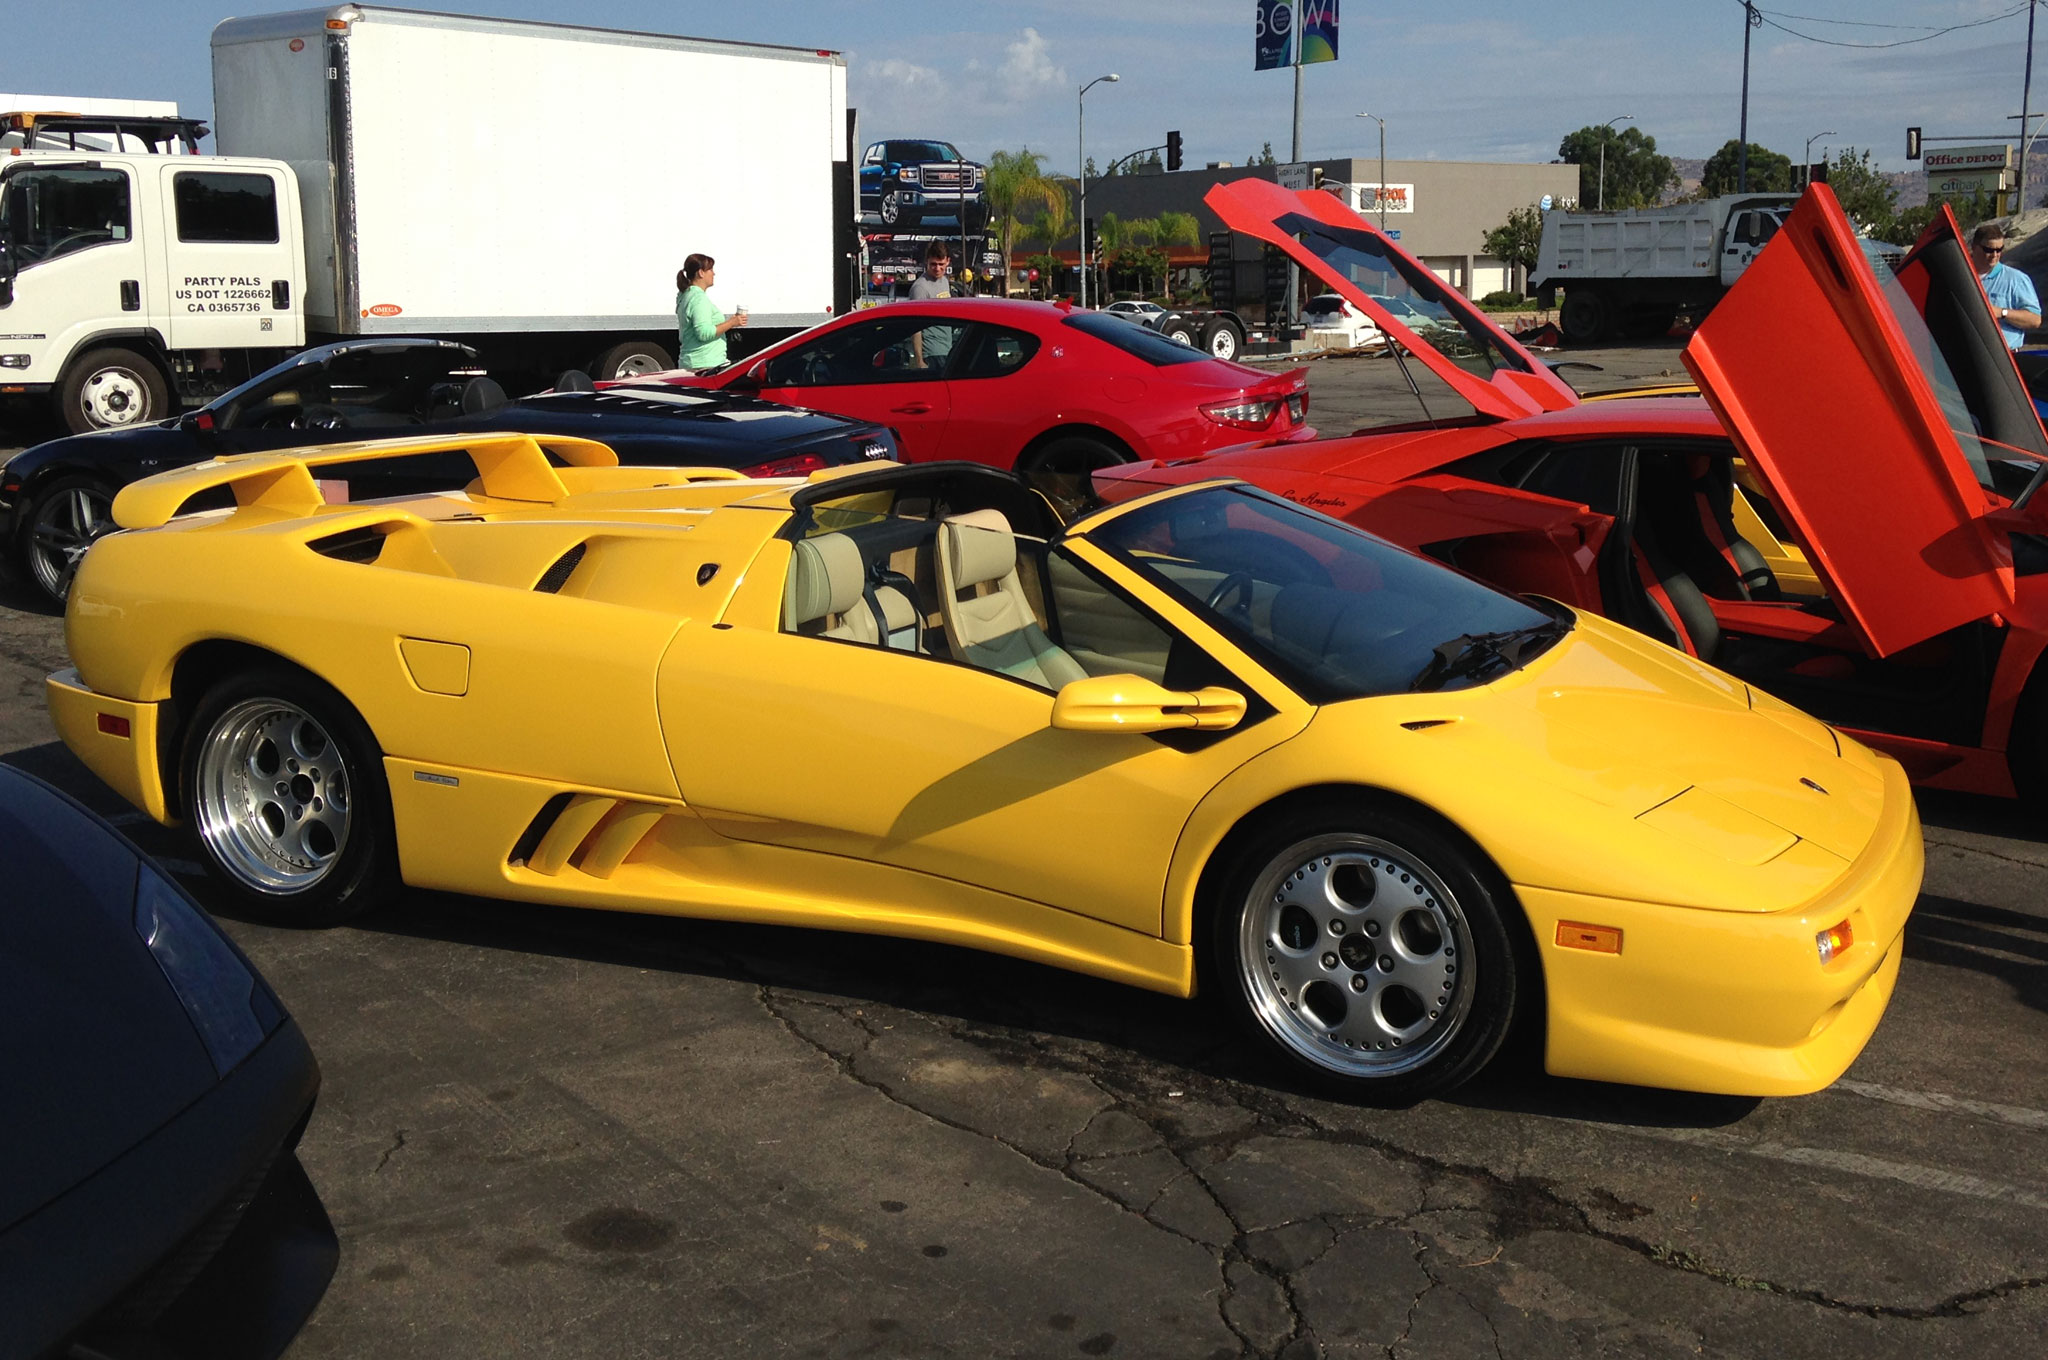 A Diablo VT Roadster, resplendent in one of about 20 different yellows Lamborghini offers. Only about 200 of these were built.